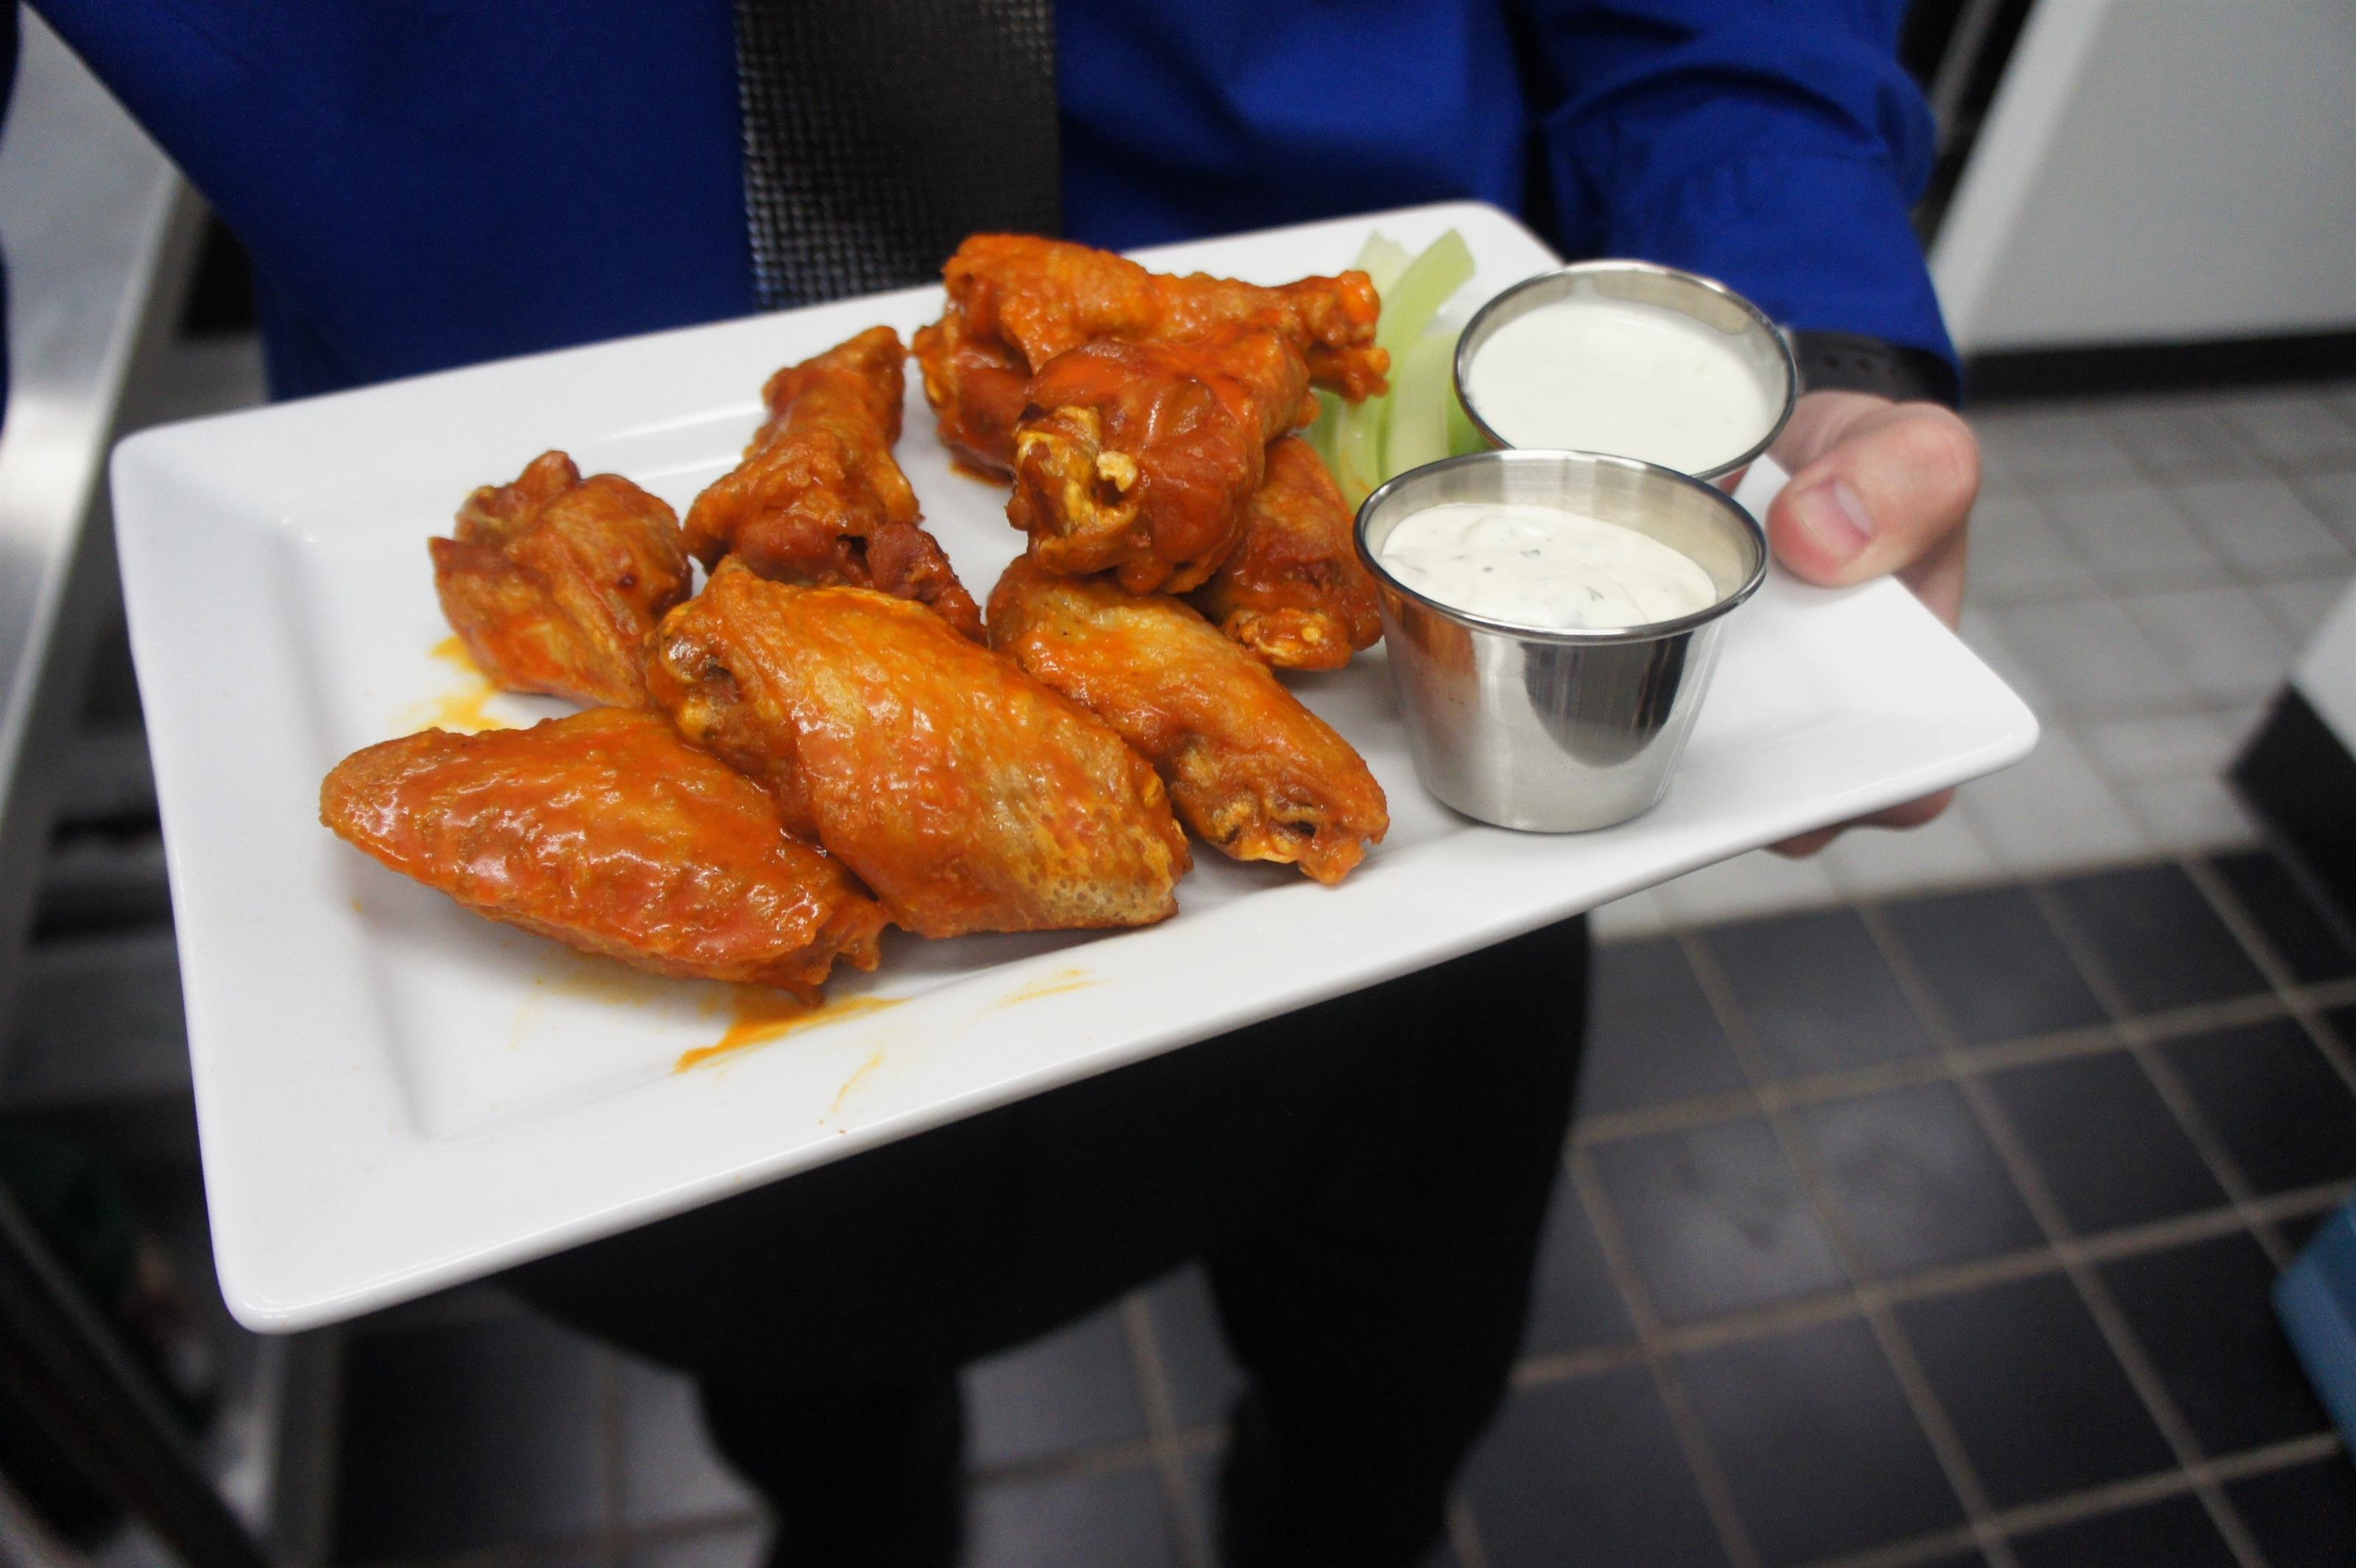 Chicken wings served with sides of ranch dressign with cellery. Served on a platter.